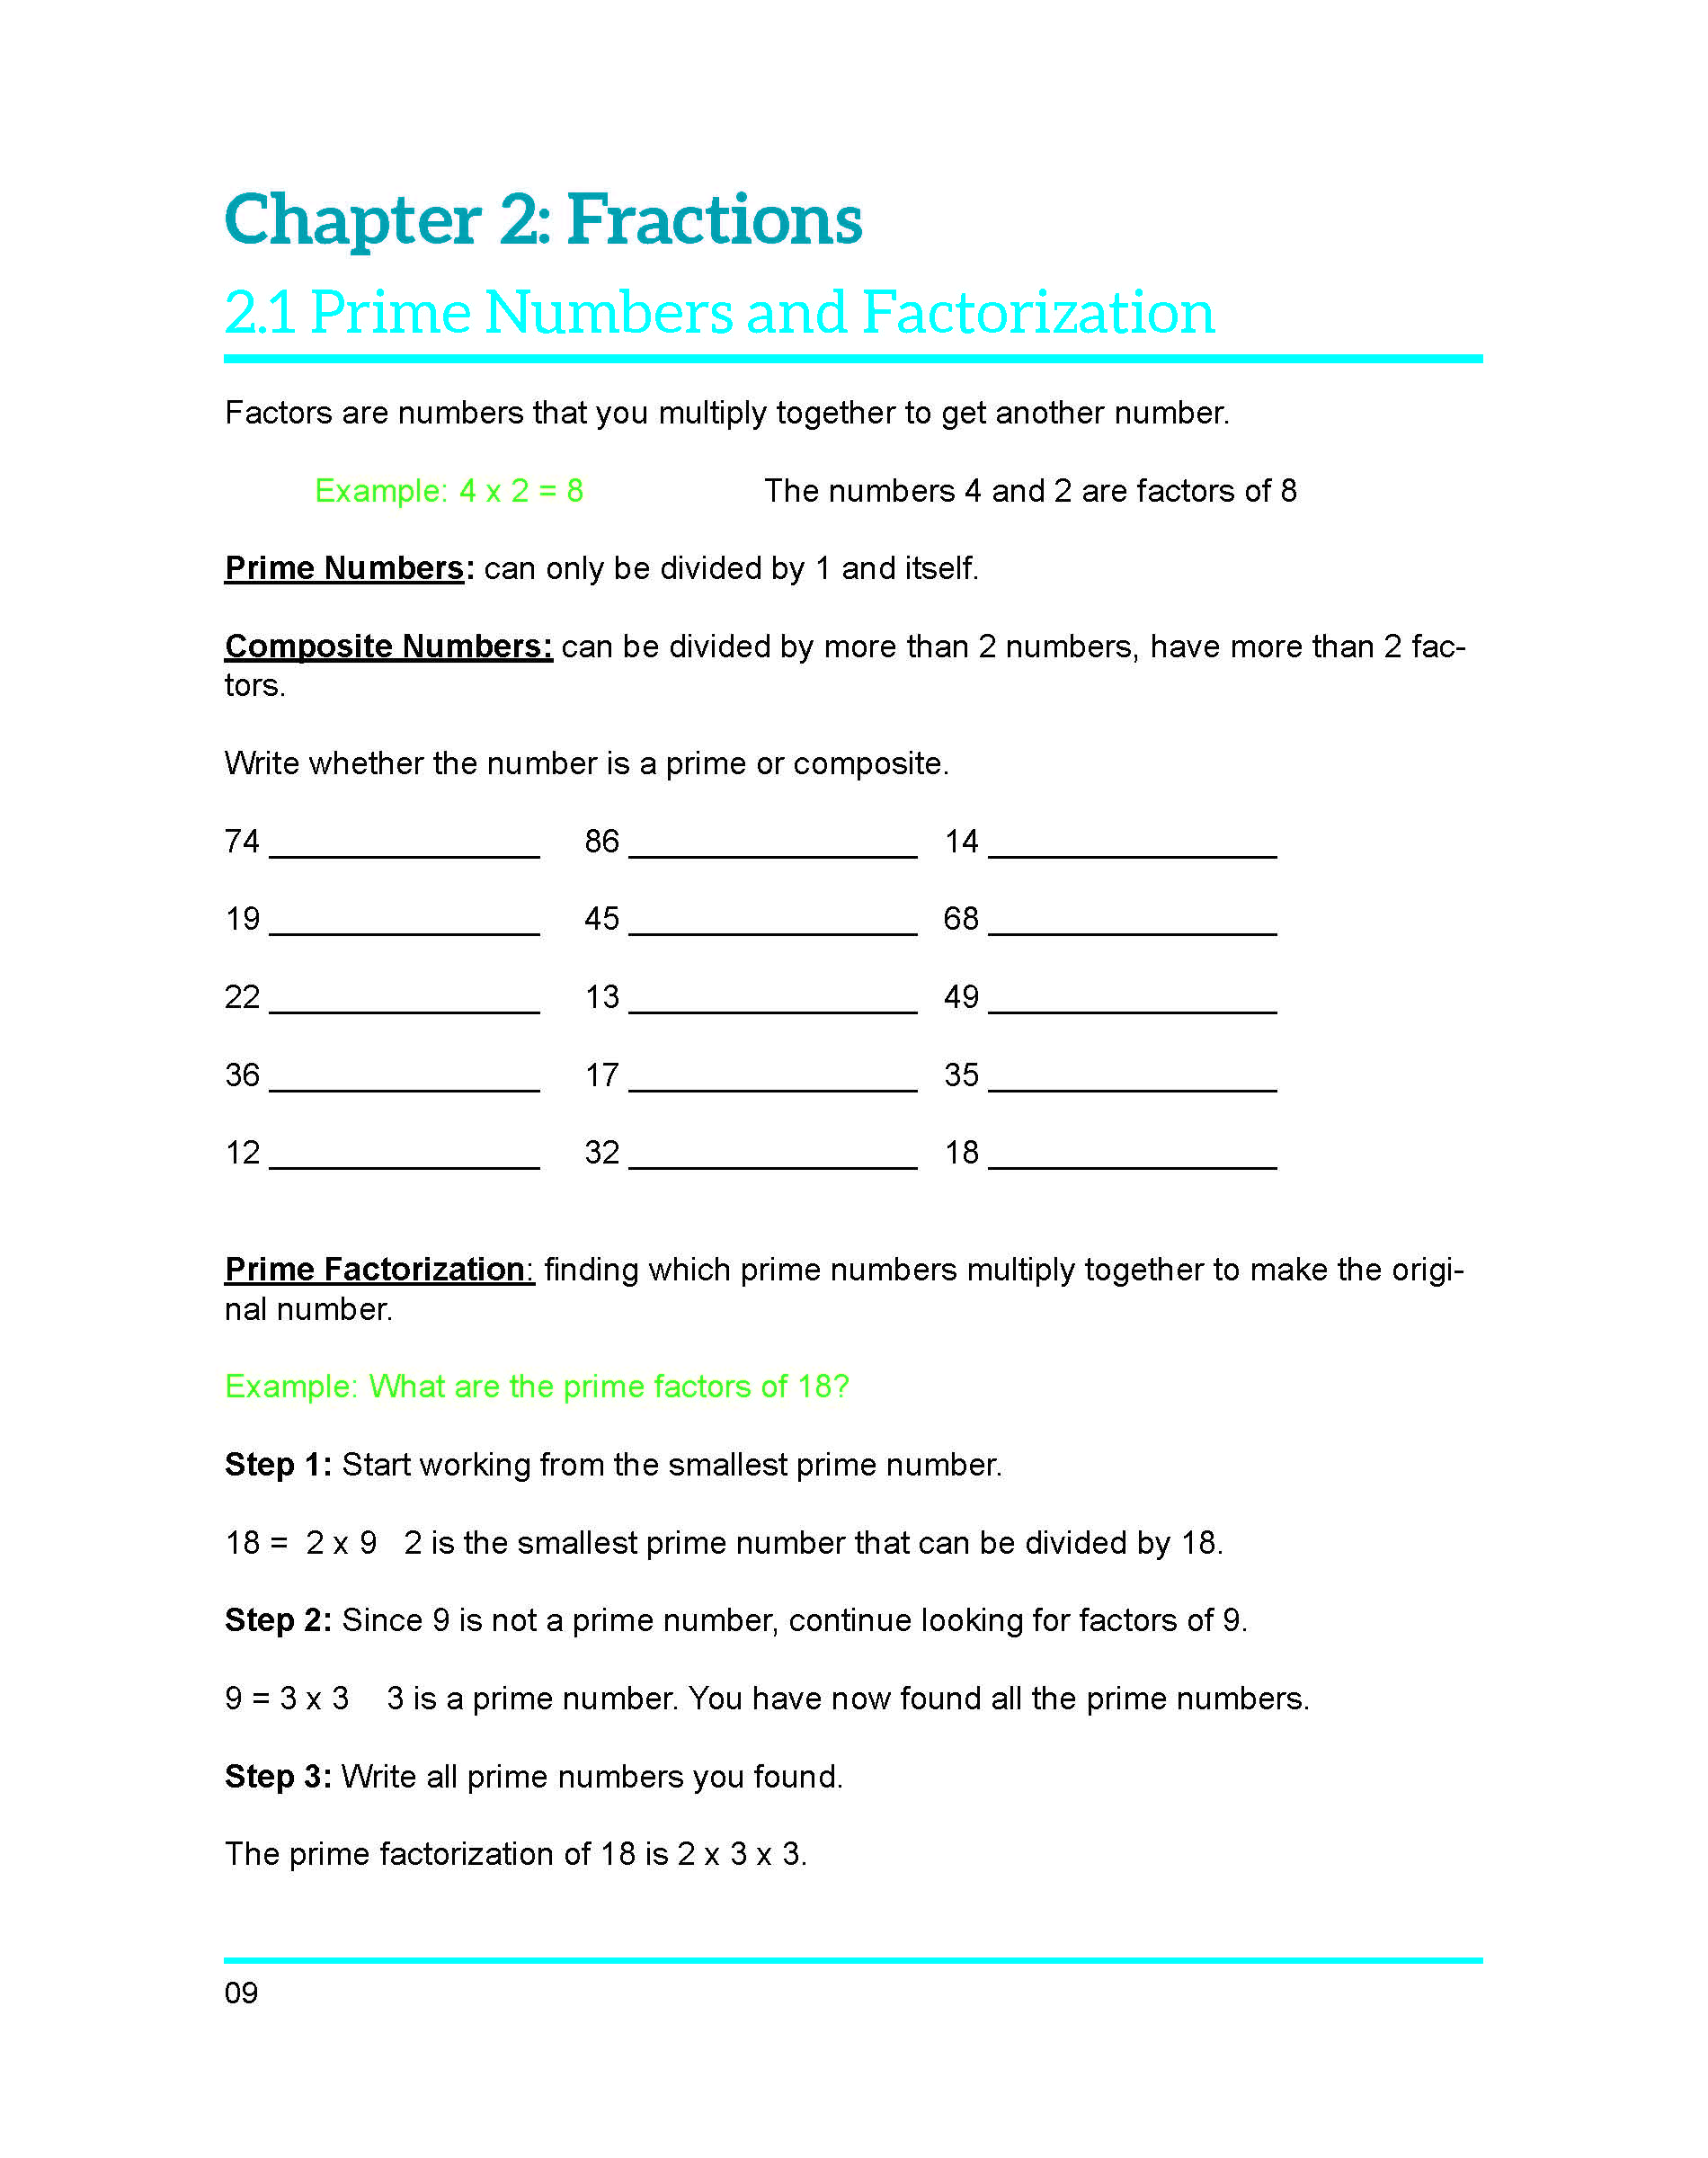 Grade-5-Fractions-Prime Numbers-Factorization.jpg